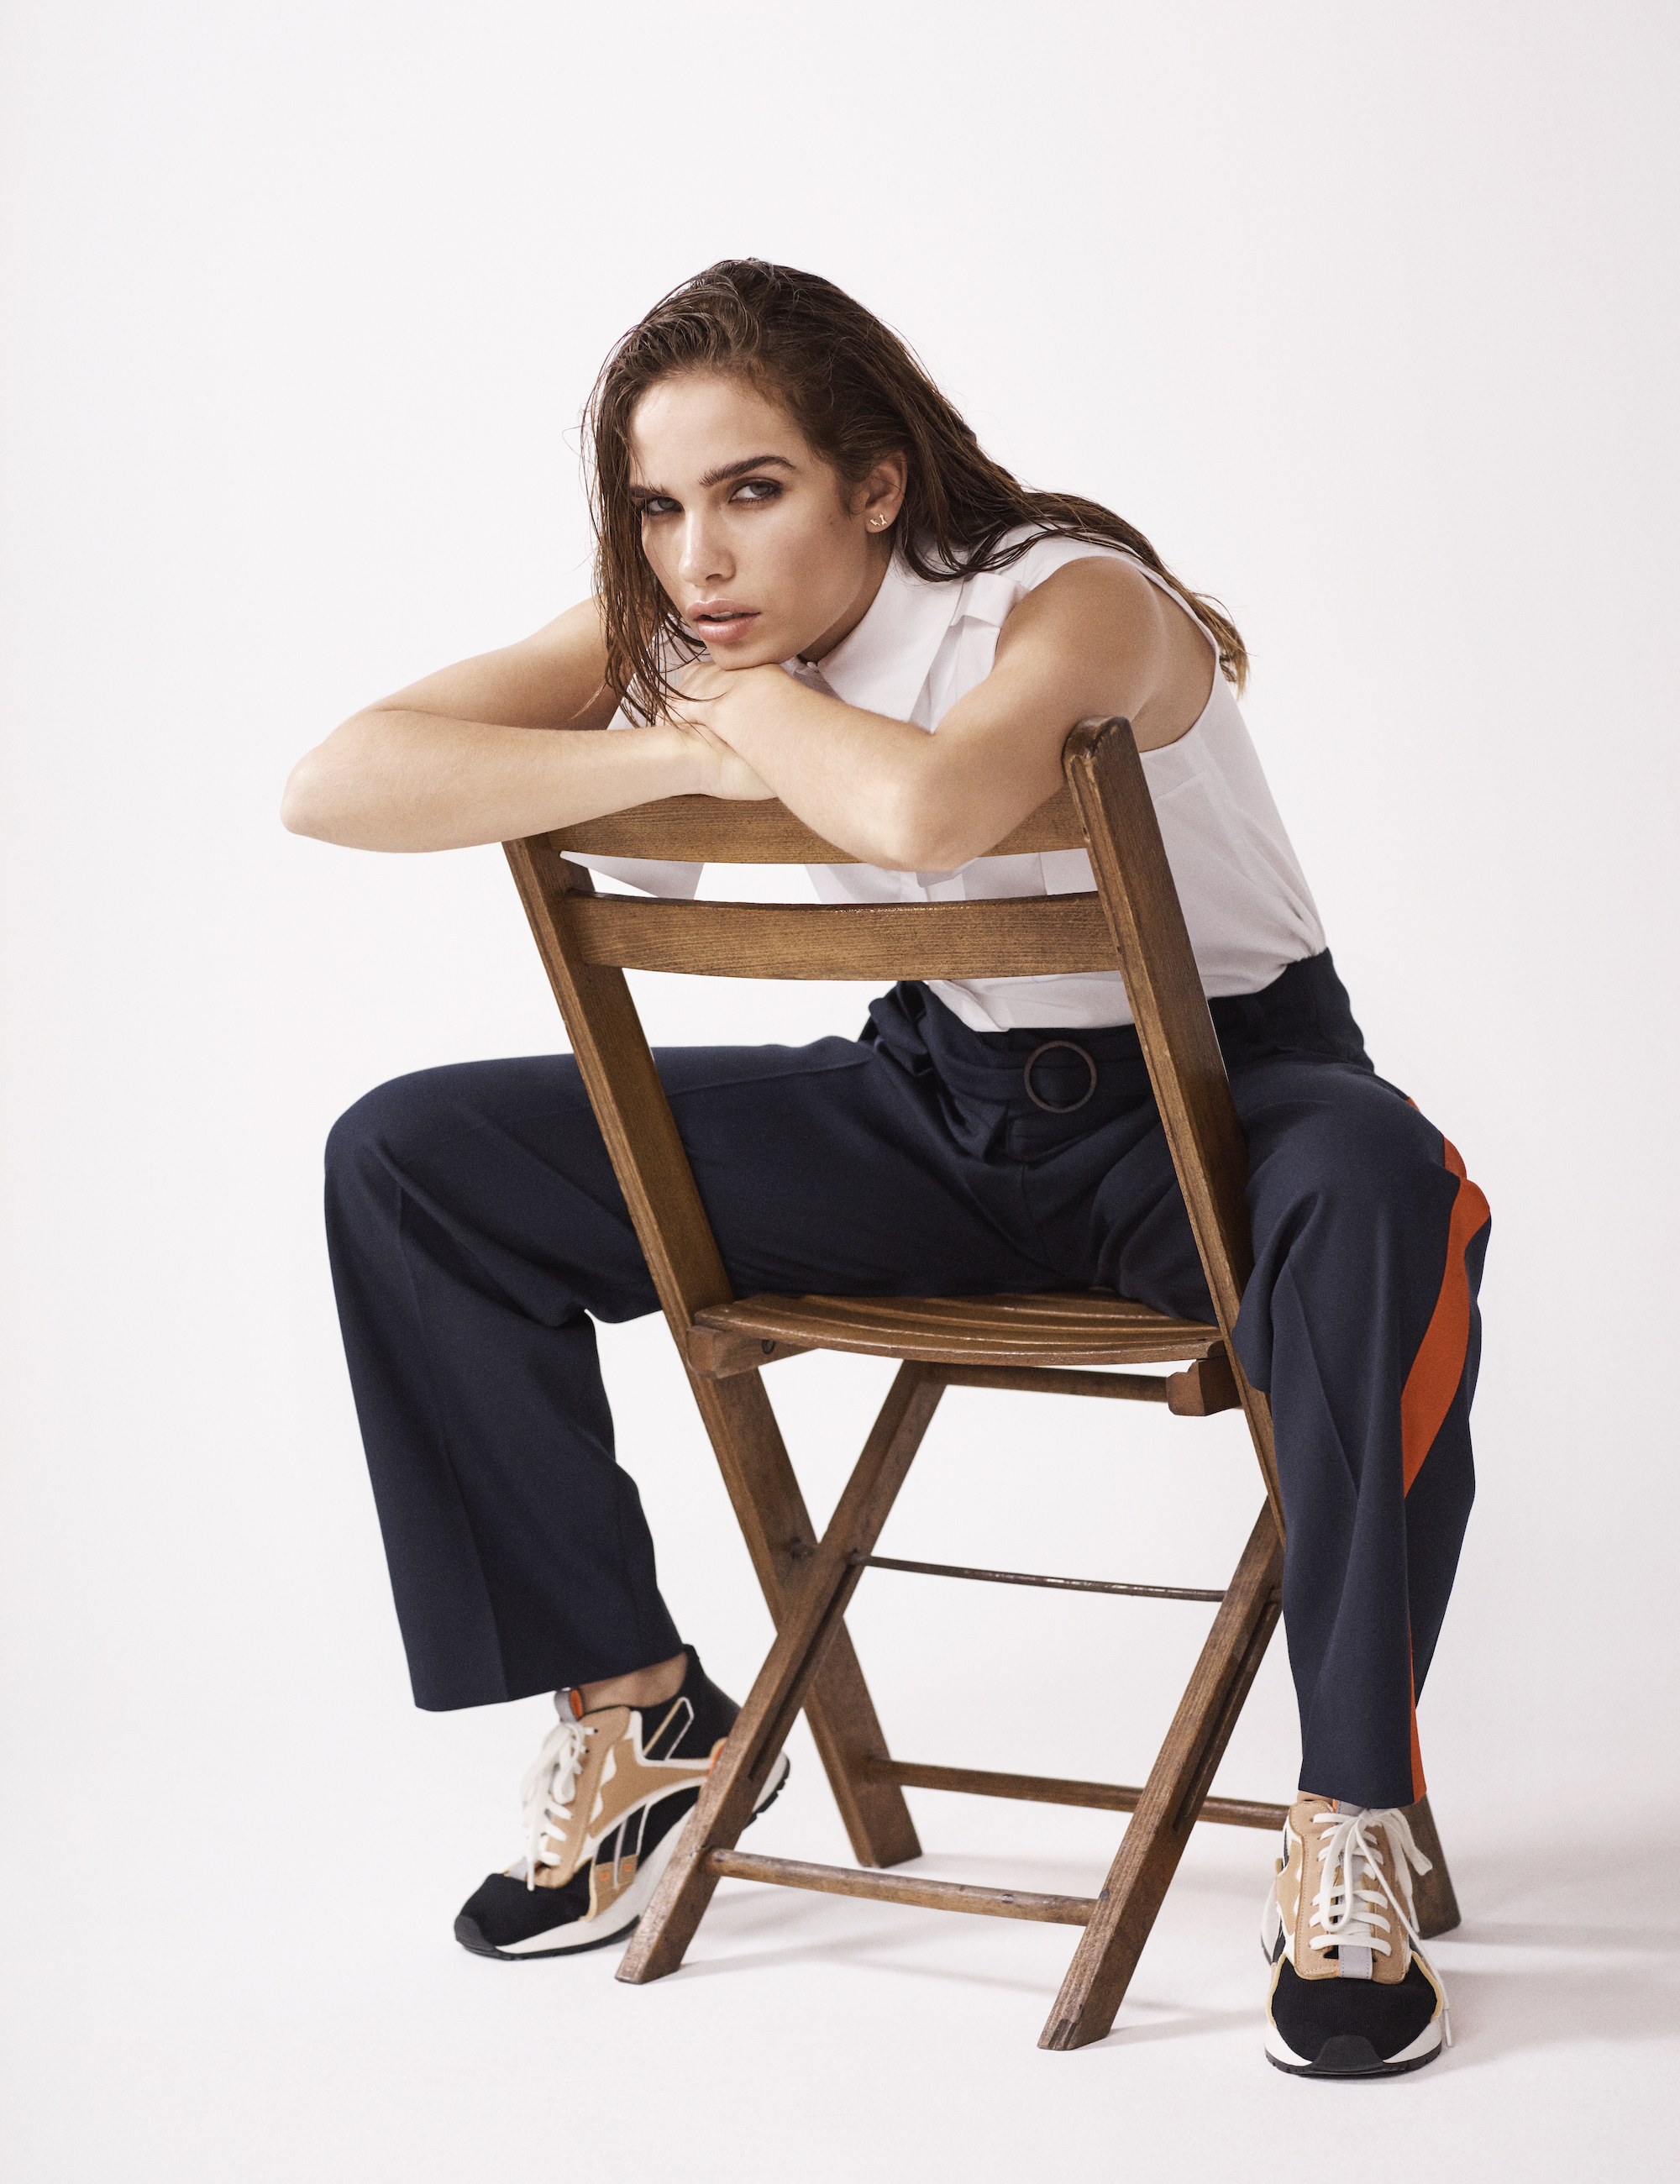 Wonderland editorial cover Hana Cross Victoria Beckham chair